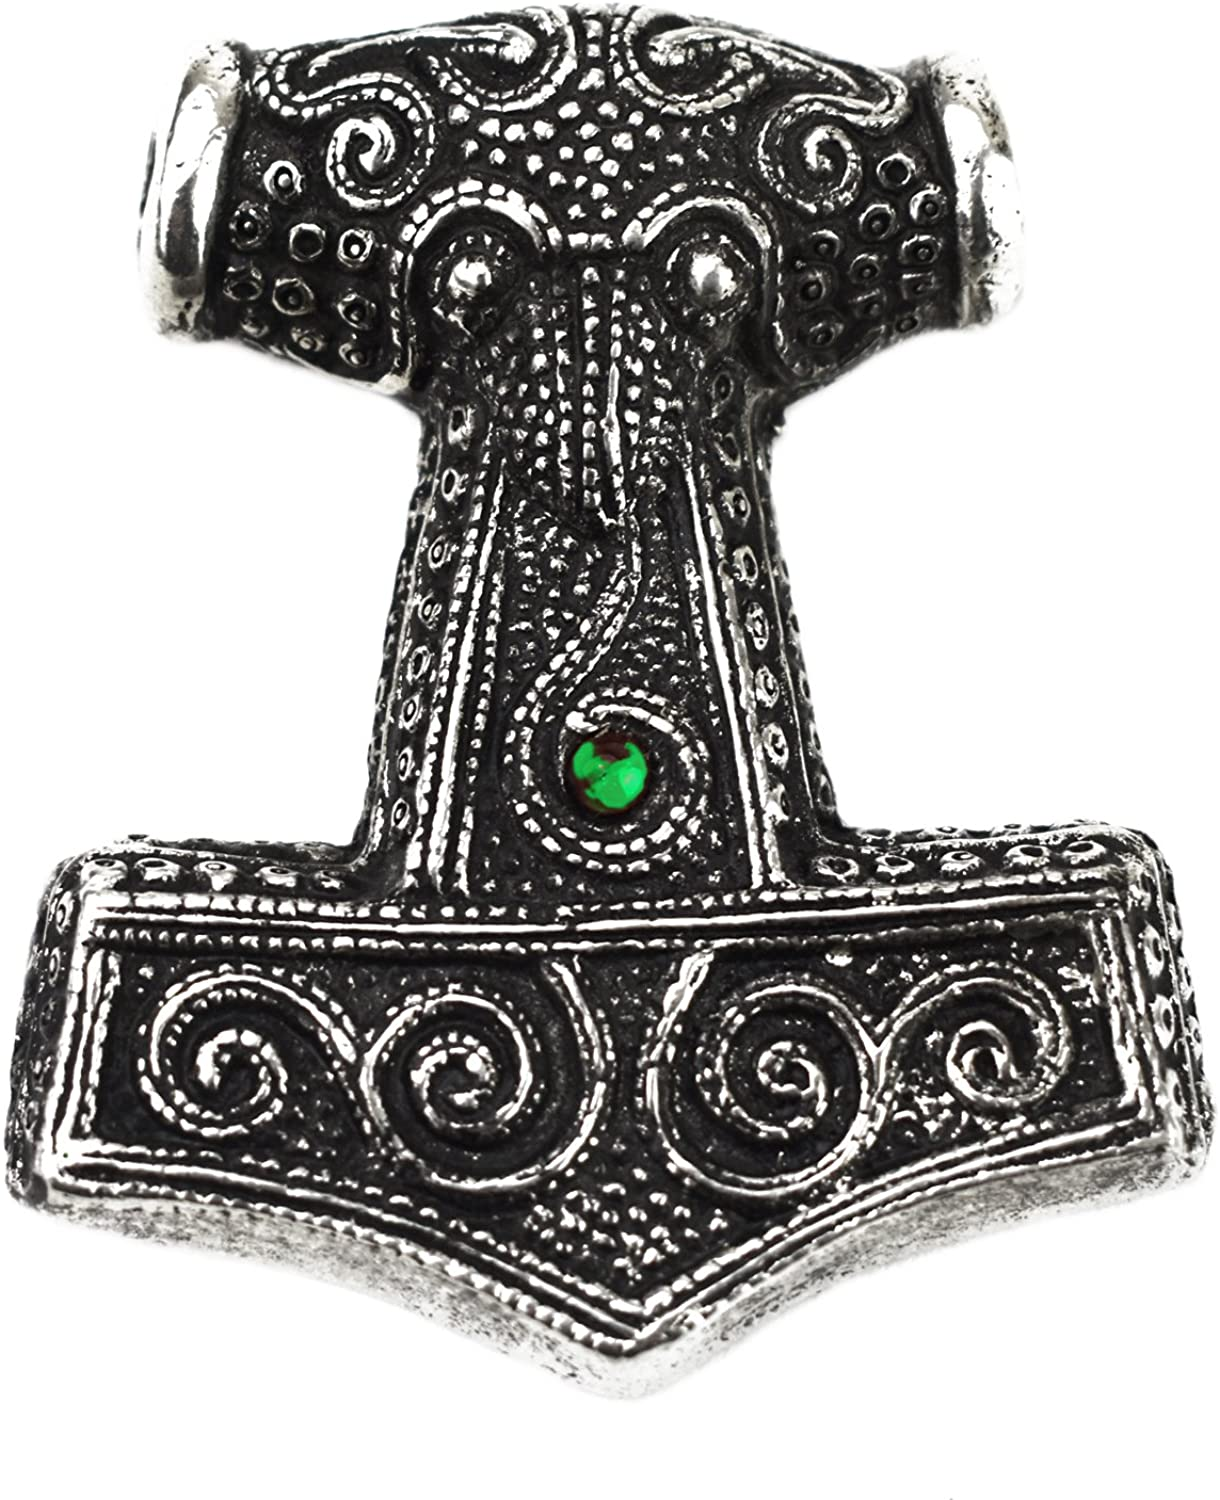 Asgard Viking Pagan Skane Hammer Mjolnir Pendant - Green @ Sons of Odin™ - Men's Jewelry on Sale,